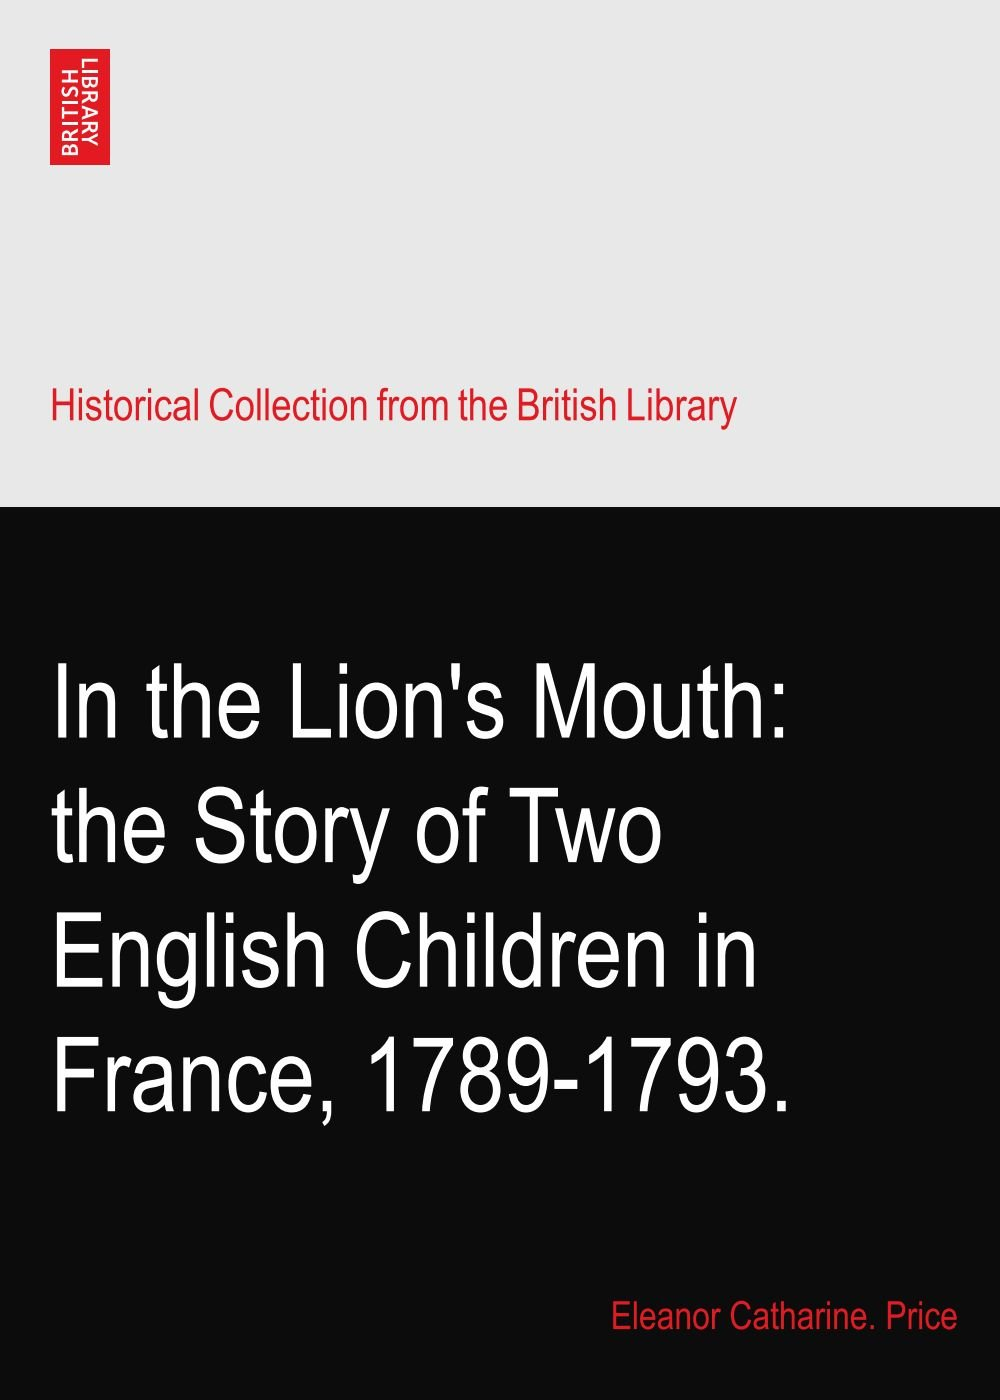 In the Lion's Mouth: the Story of Two English Children in France, 1789-1793. PDF